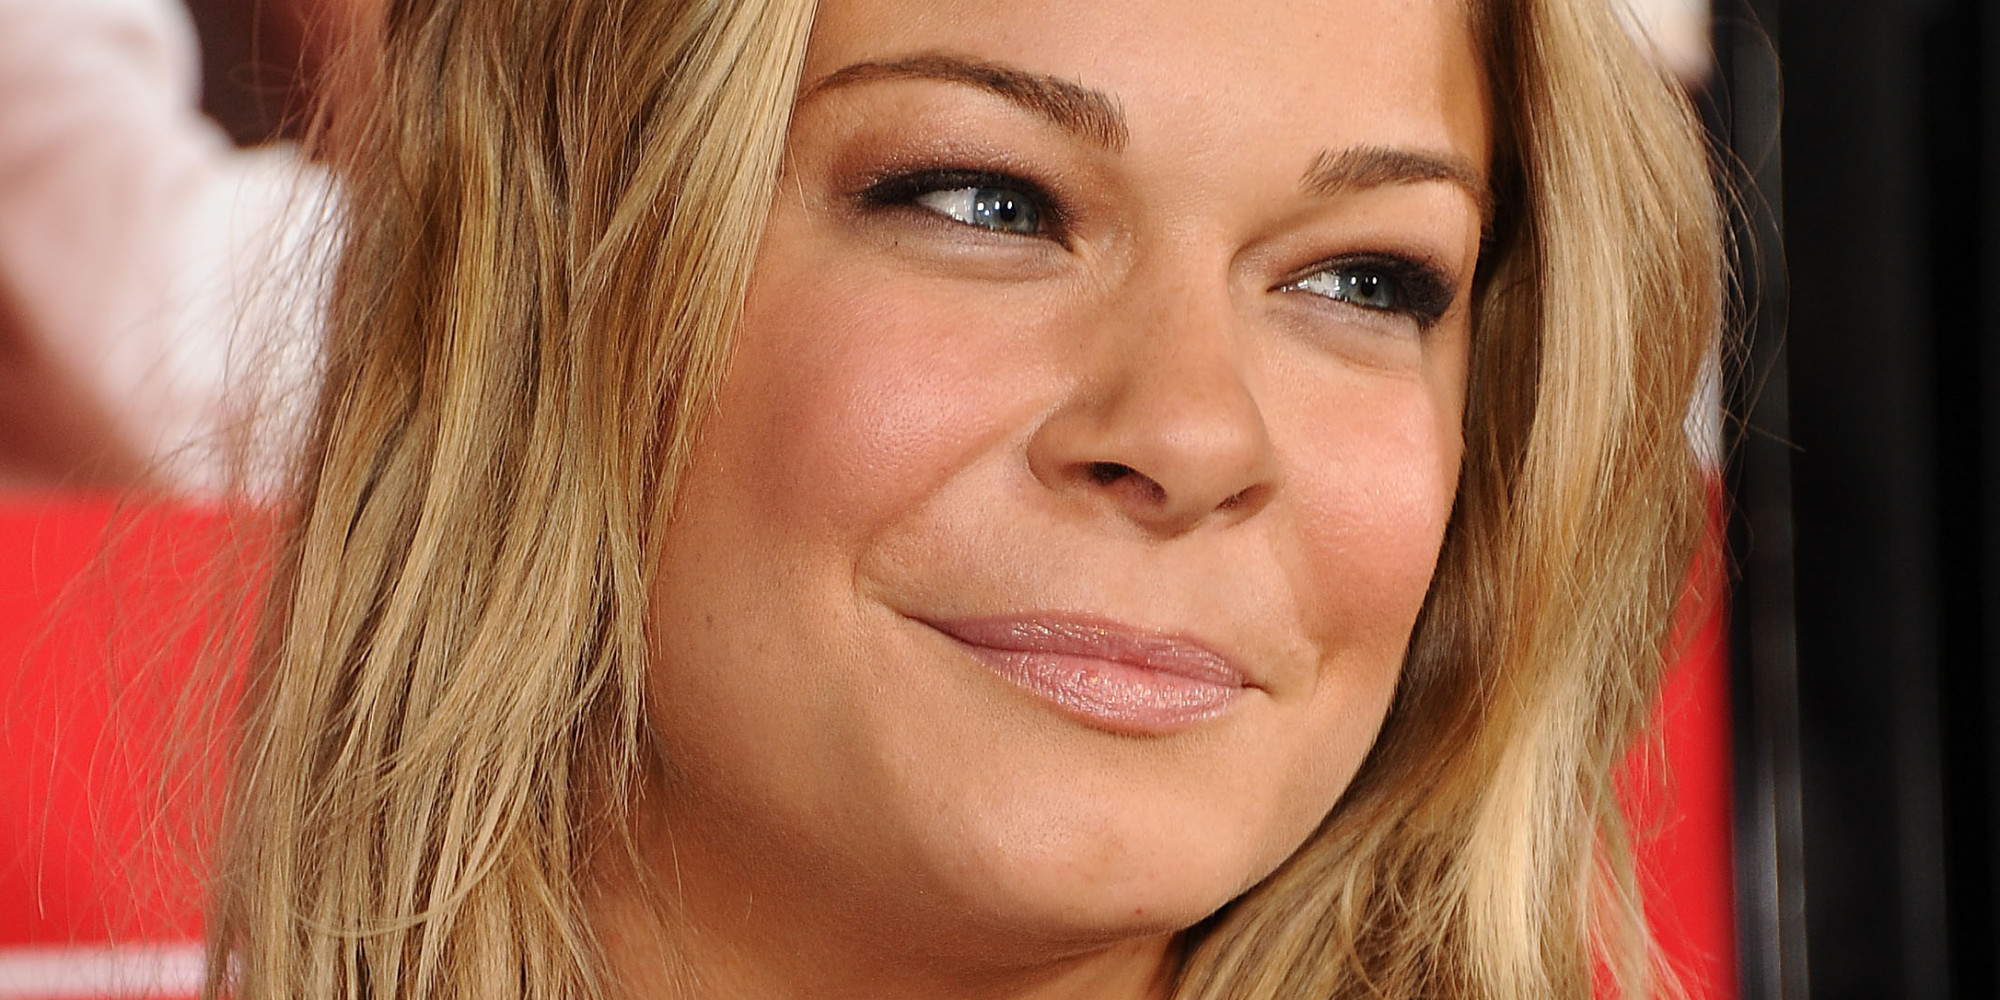 Leann rimes affair facebook